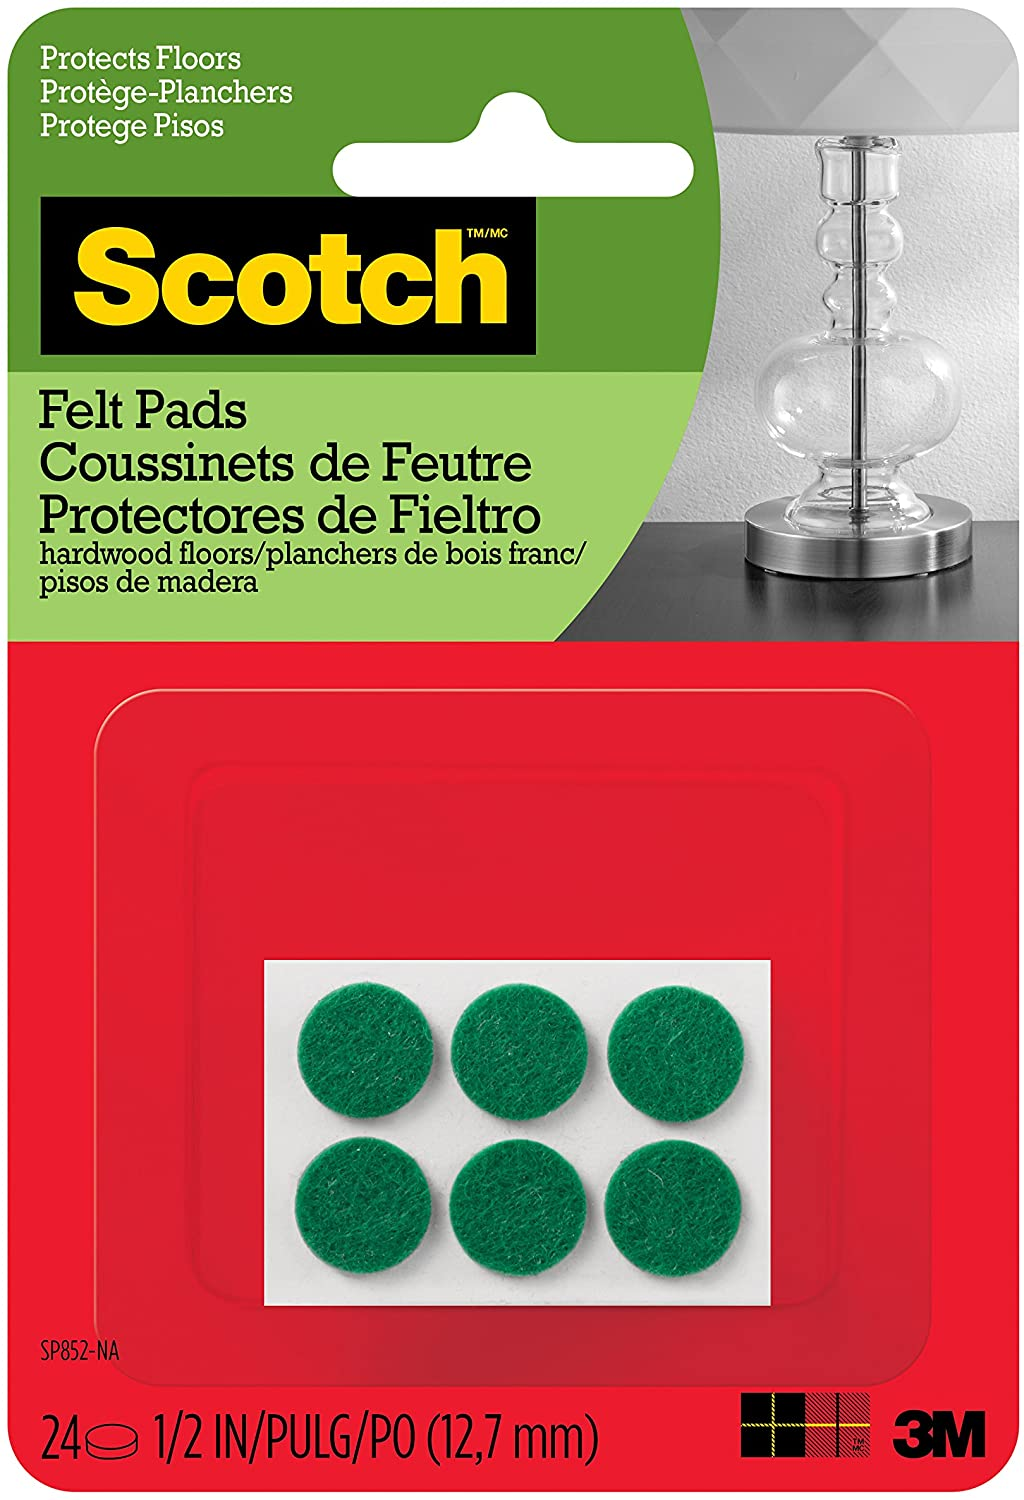 Beige Diameter Round Great for Protecting Wood Floors 1 in Scotch Brand Felt Pads by 3M New